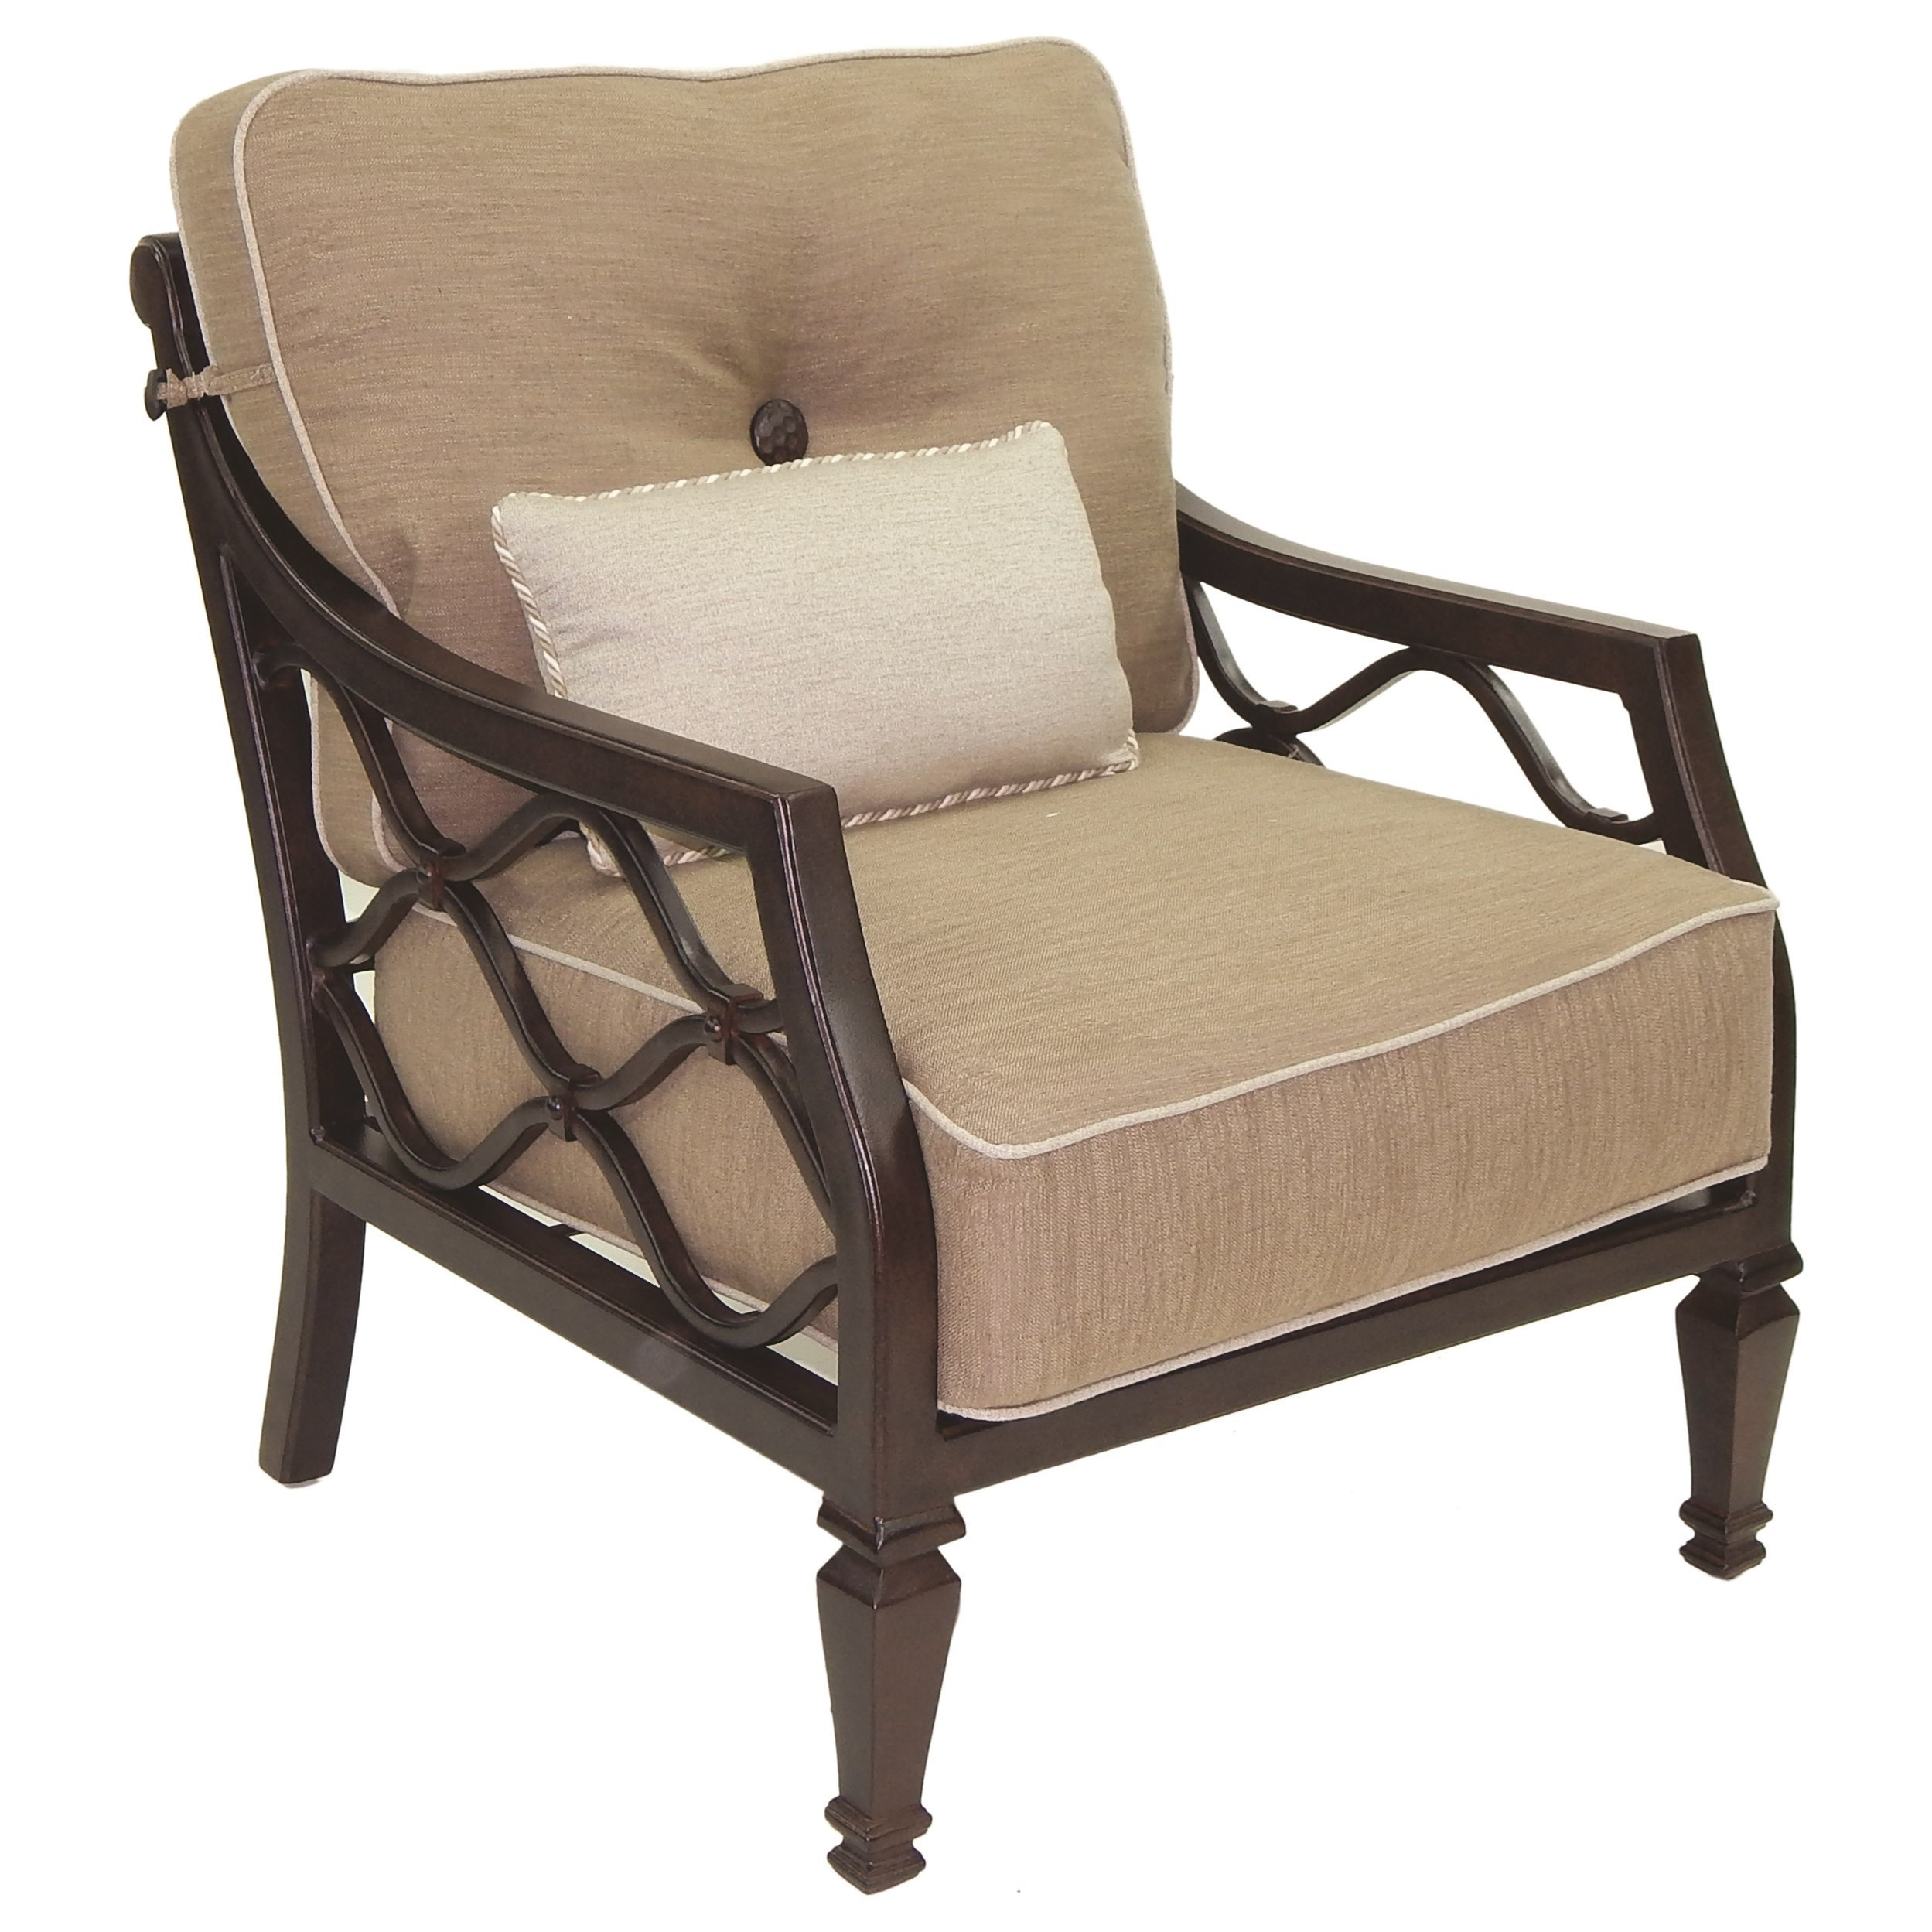 Cushioned Lounge Chair w/ One Kidney Pillow